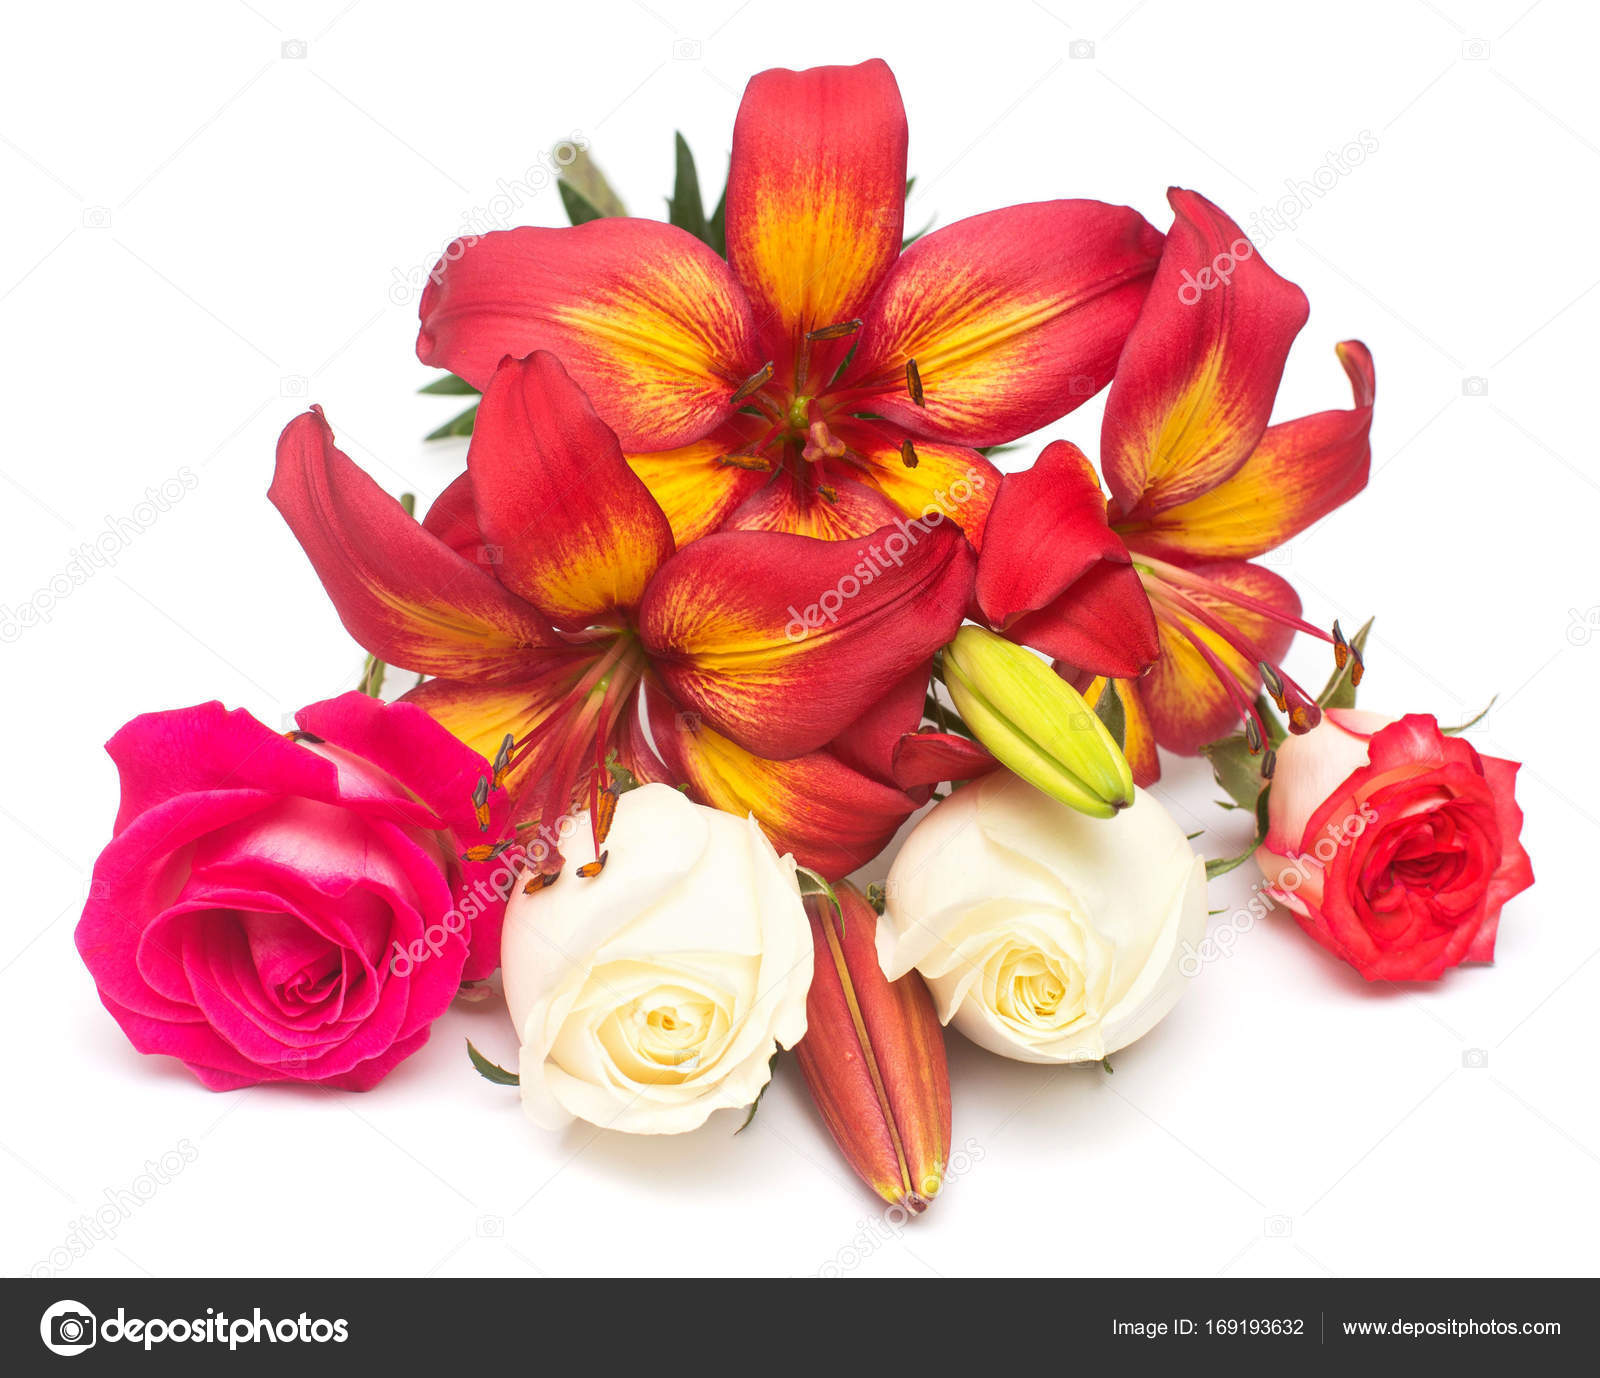 Flowers red lily in the form of a star and white rose with buds flowers red lily in the form of a star and white rose with buds stock izmirmasajfo